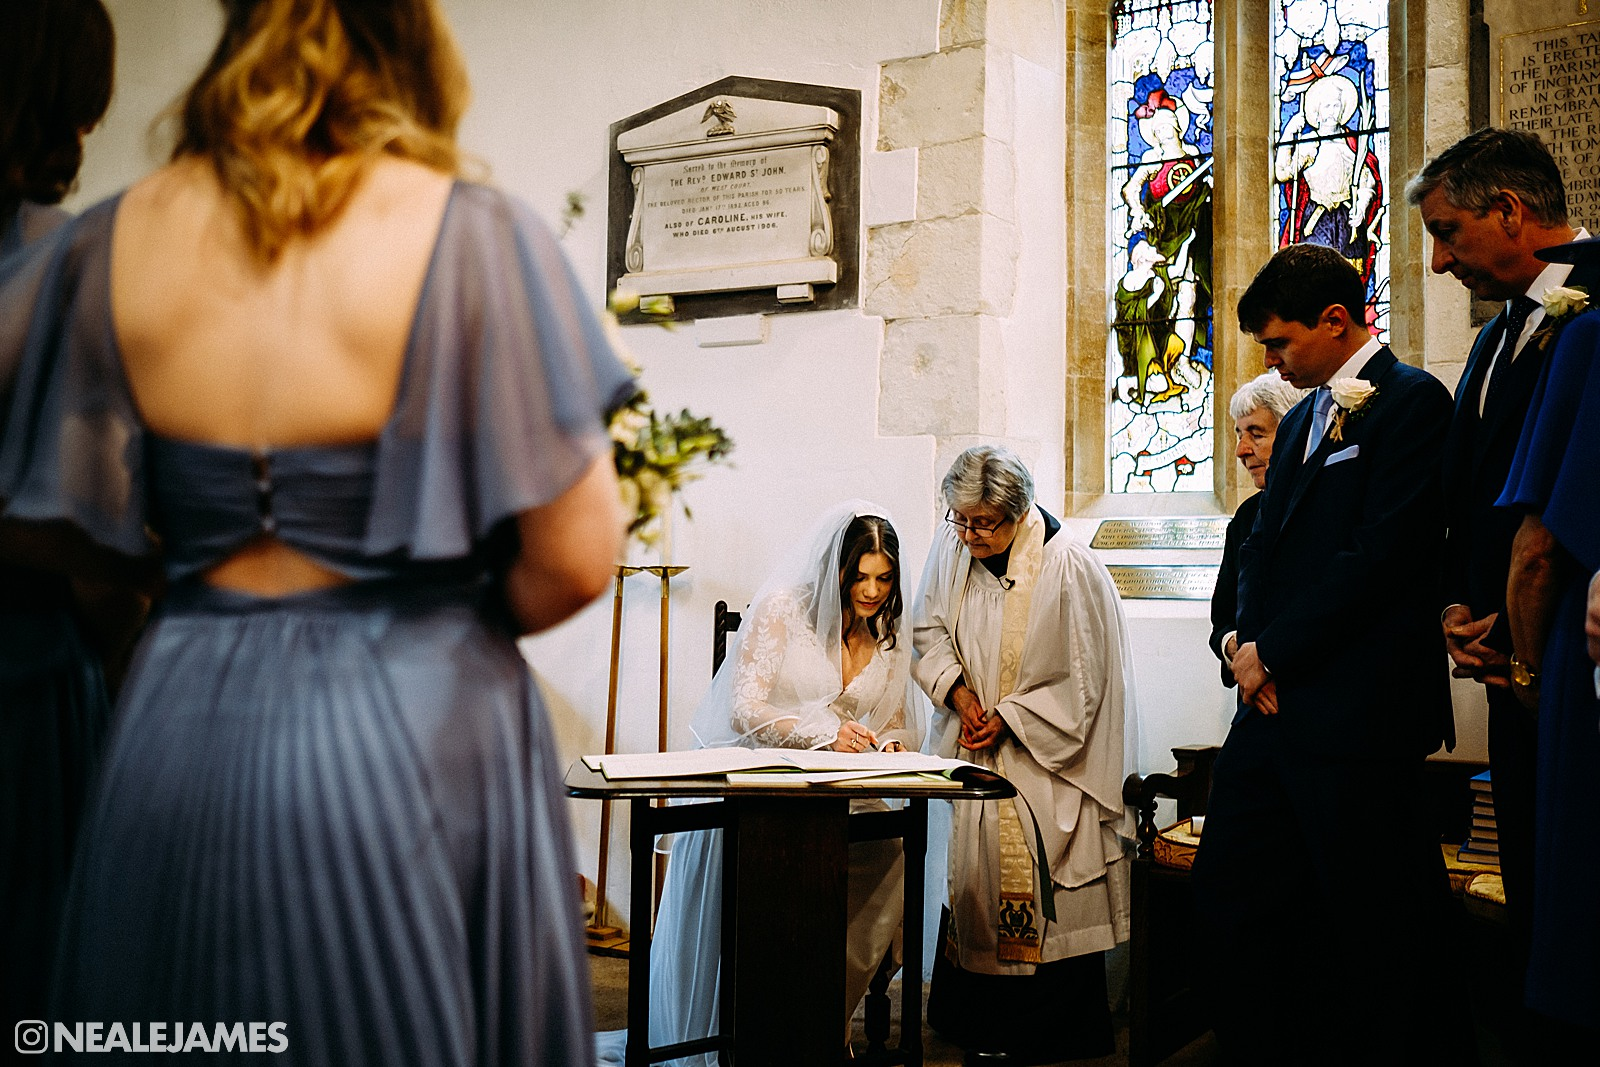 A bride signing the register in church